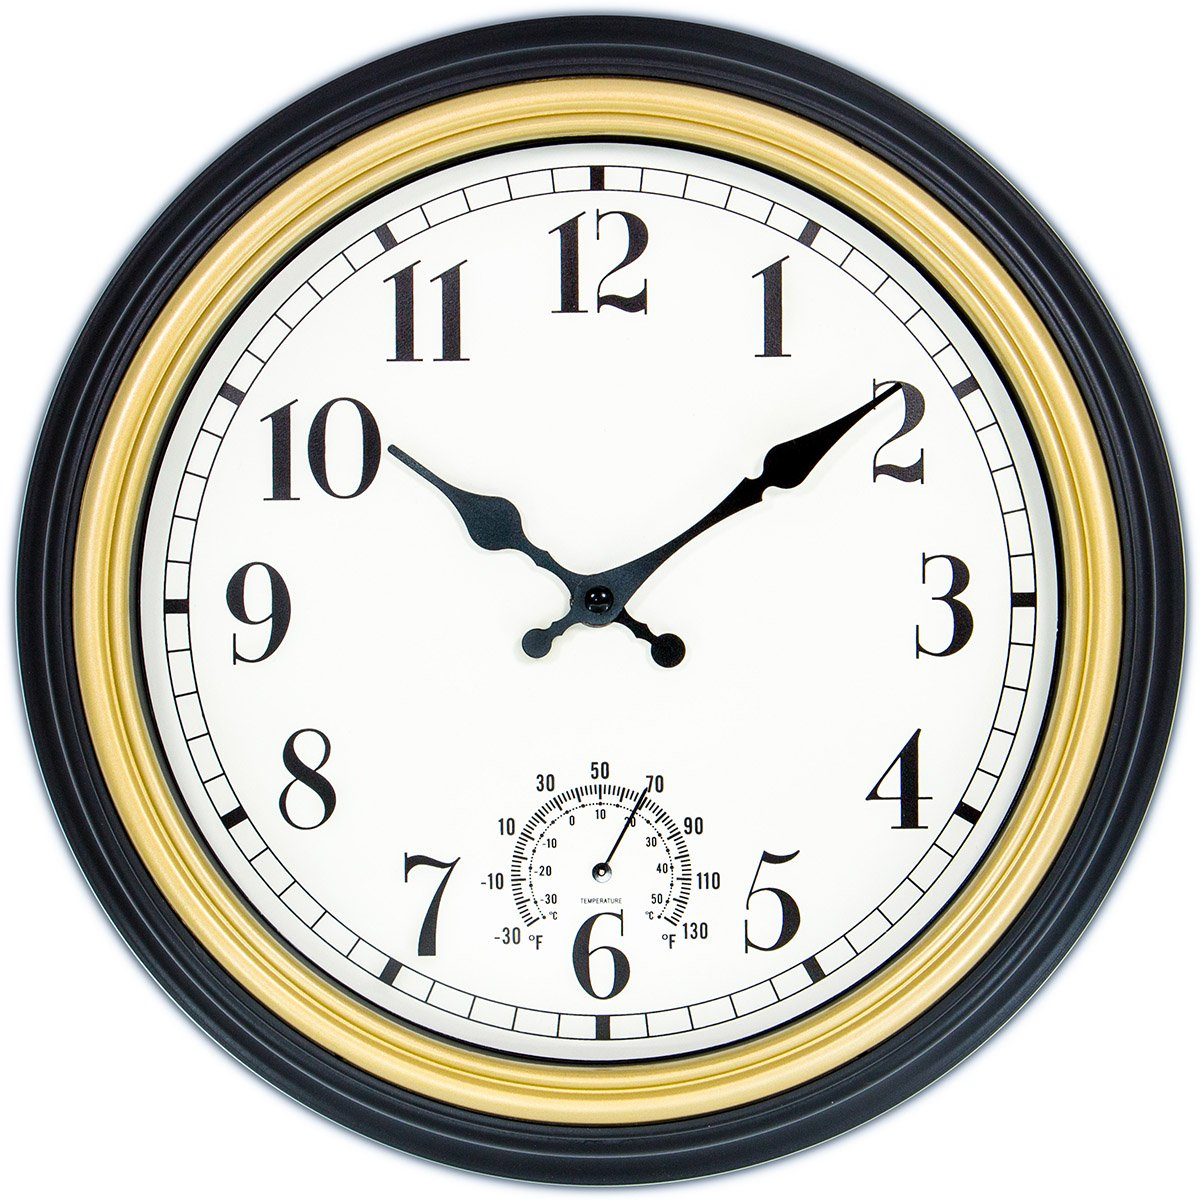 45Min 12-Inch Indoor/Outdoor Retro Wall Clock with Thermometer, Silent Non Ticking Round Wall Clock Home Decor with Arabic numerals